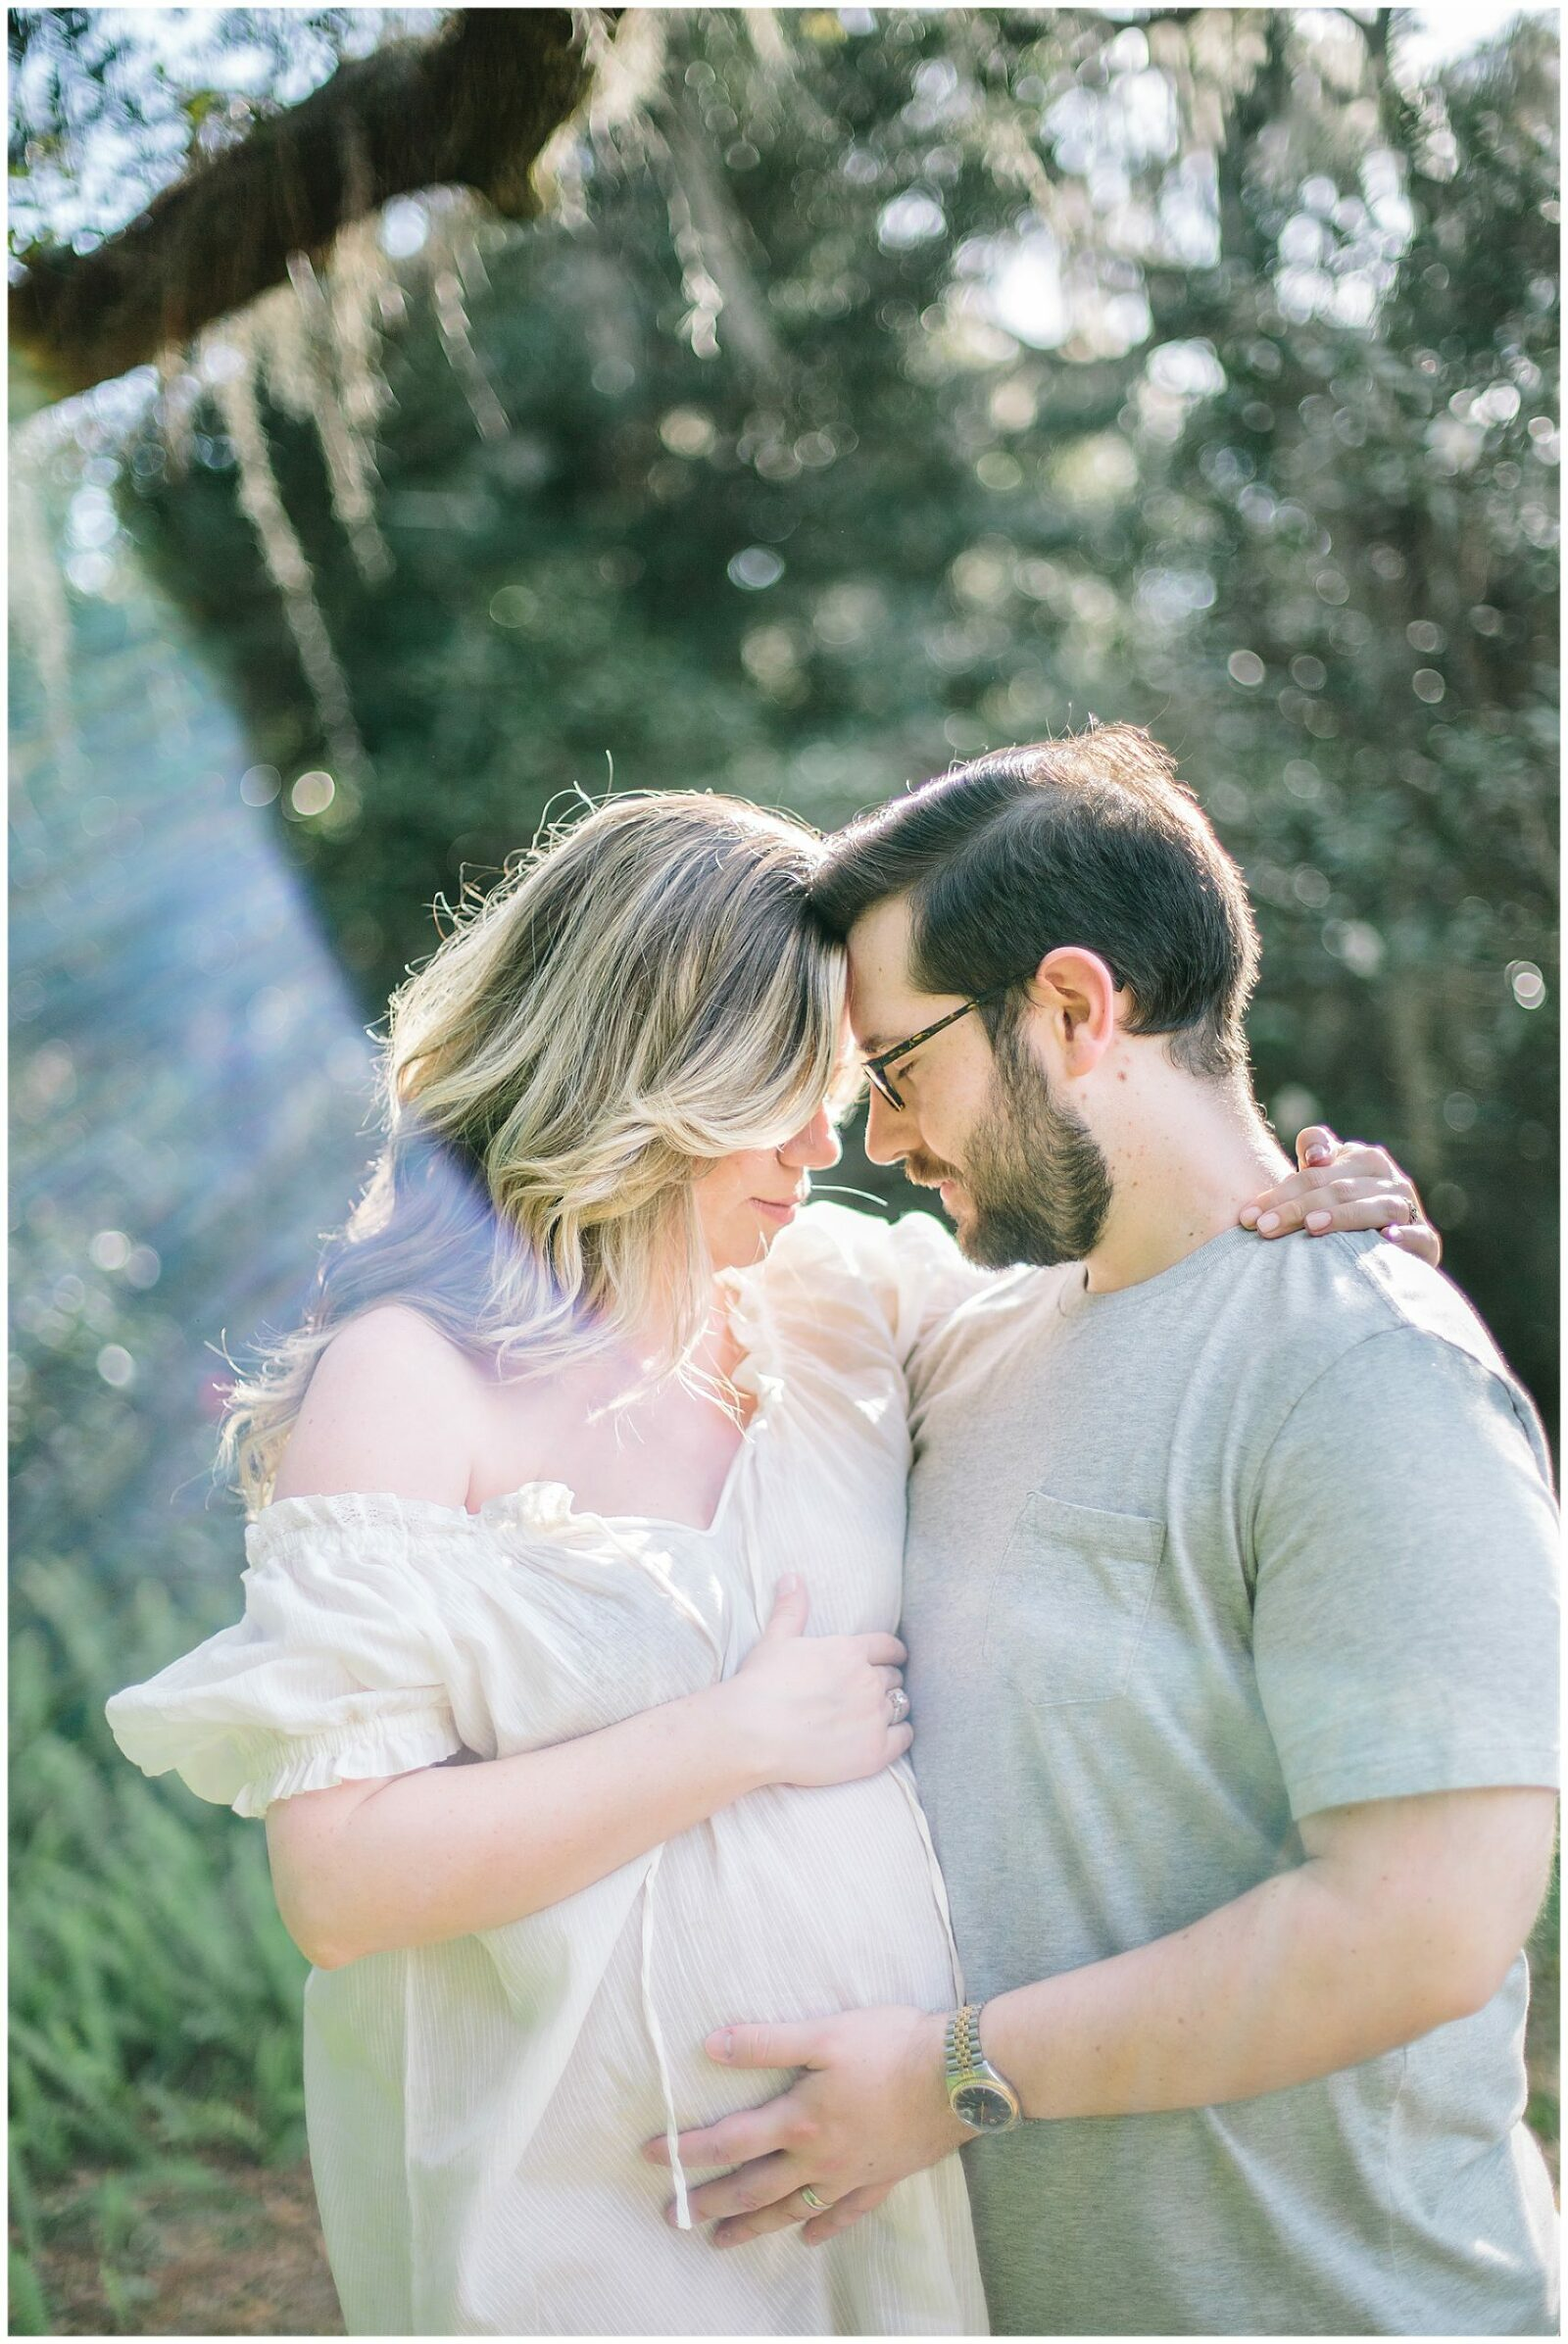 Maternity portrait of couple outdoors